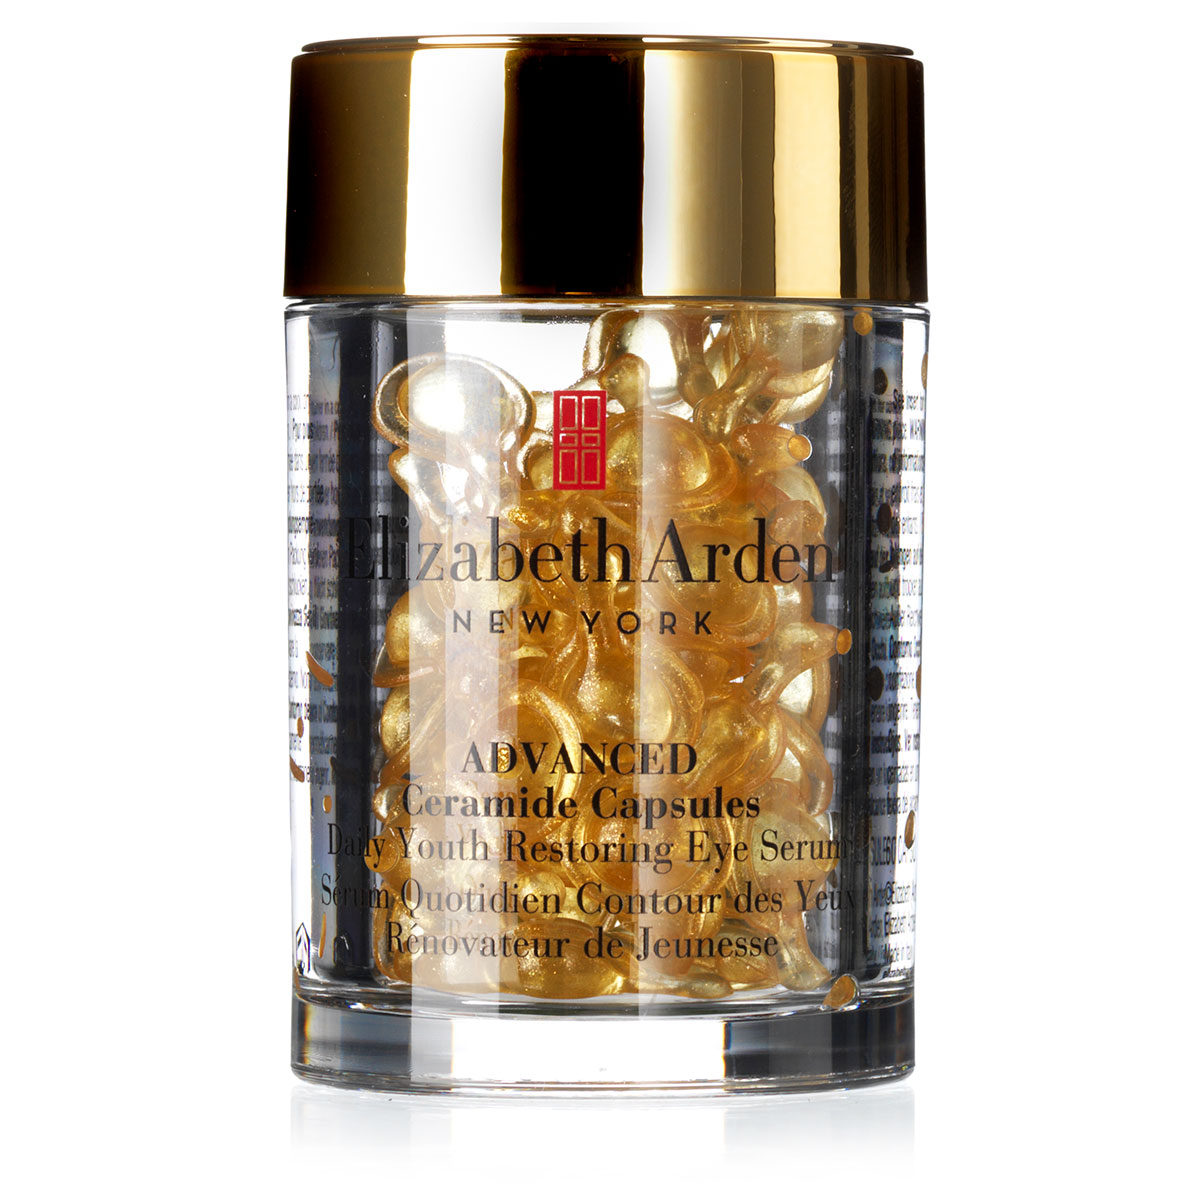 Elizabeth Arden Advanced Ceramide Capsules Eye Serum - 60 stk